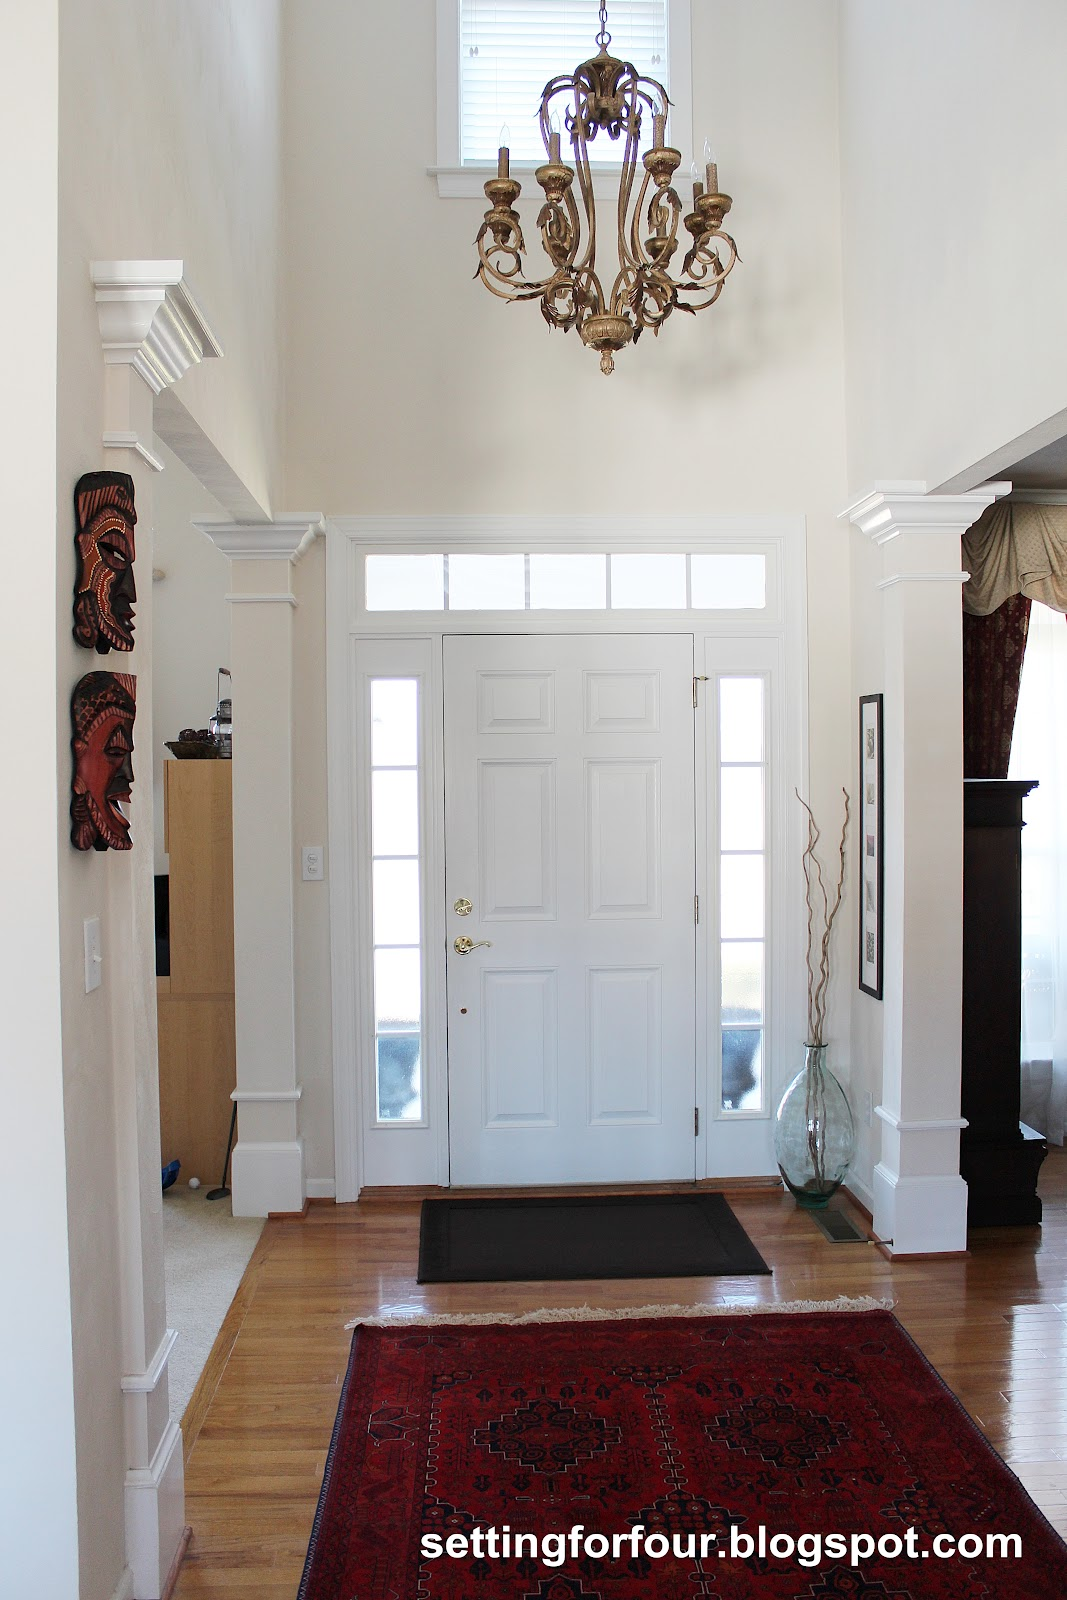 My Space: The Foyer - Setting for Four